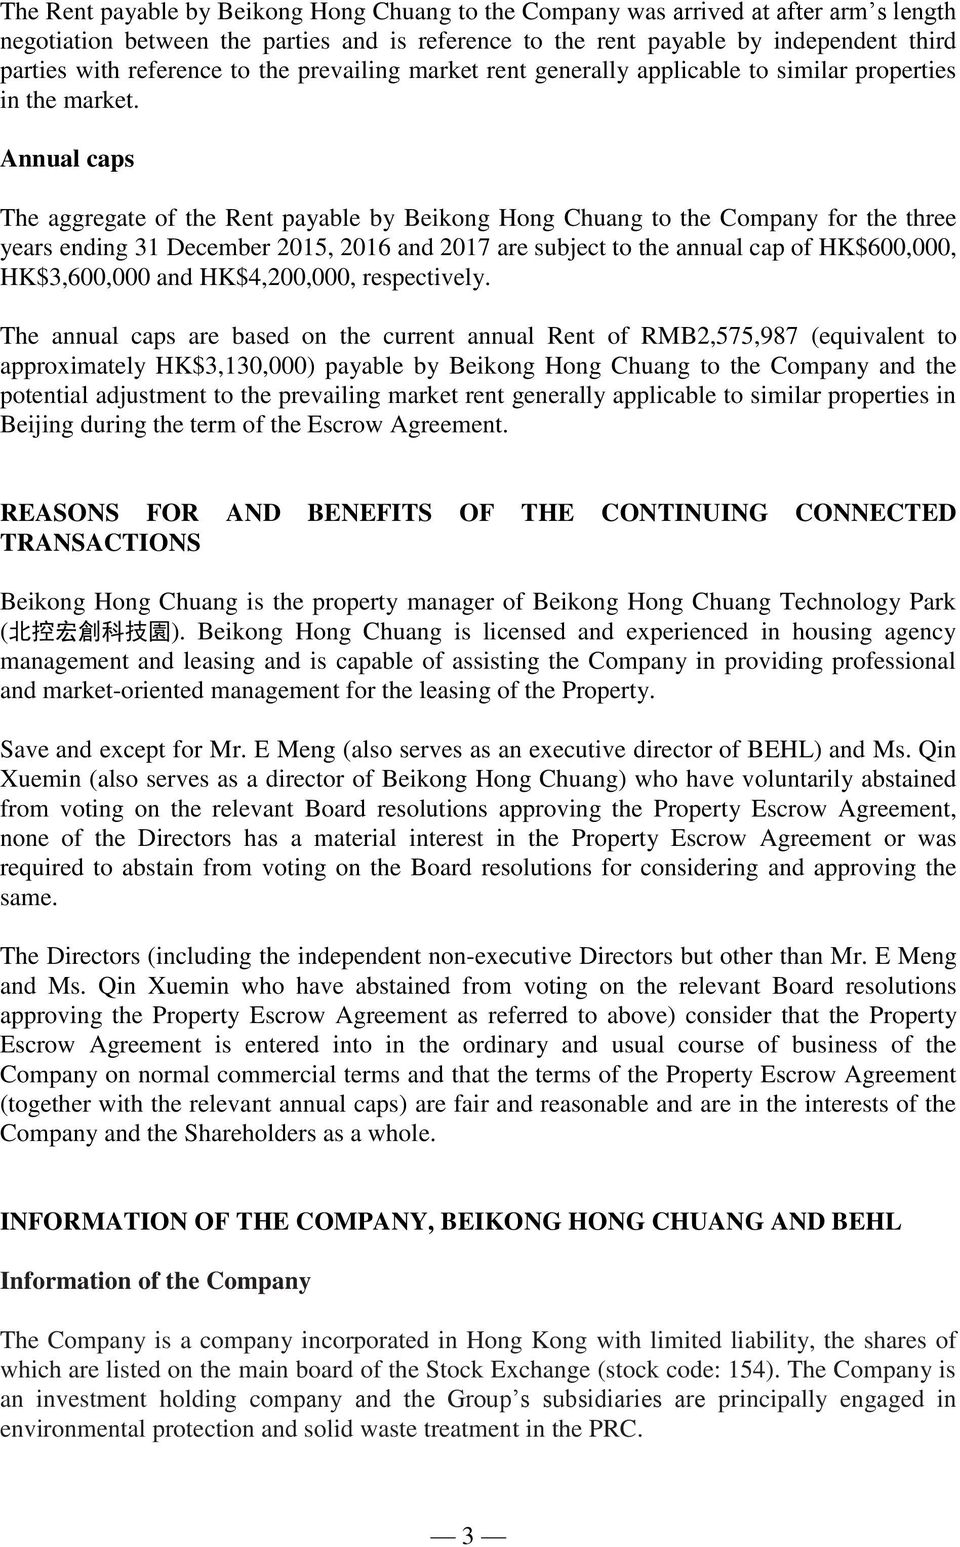 Annual caps The aggregate of the Rent payable by Beikong Hong Chuang to the Company for the three years ending 31 December 2015, 2016 and 2017 are subject to the annual cap of HK$600,000,